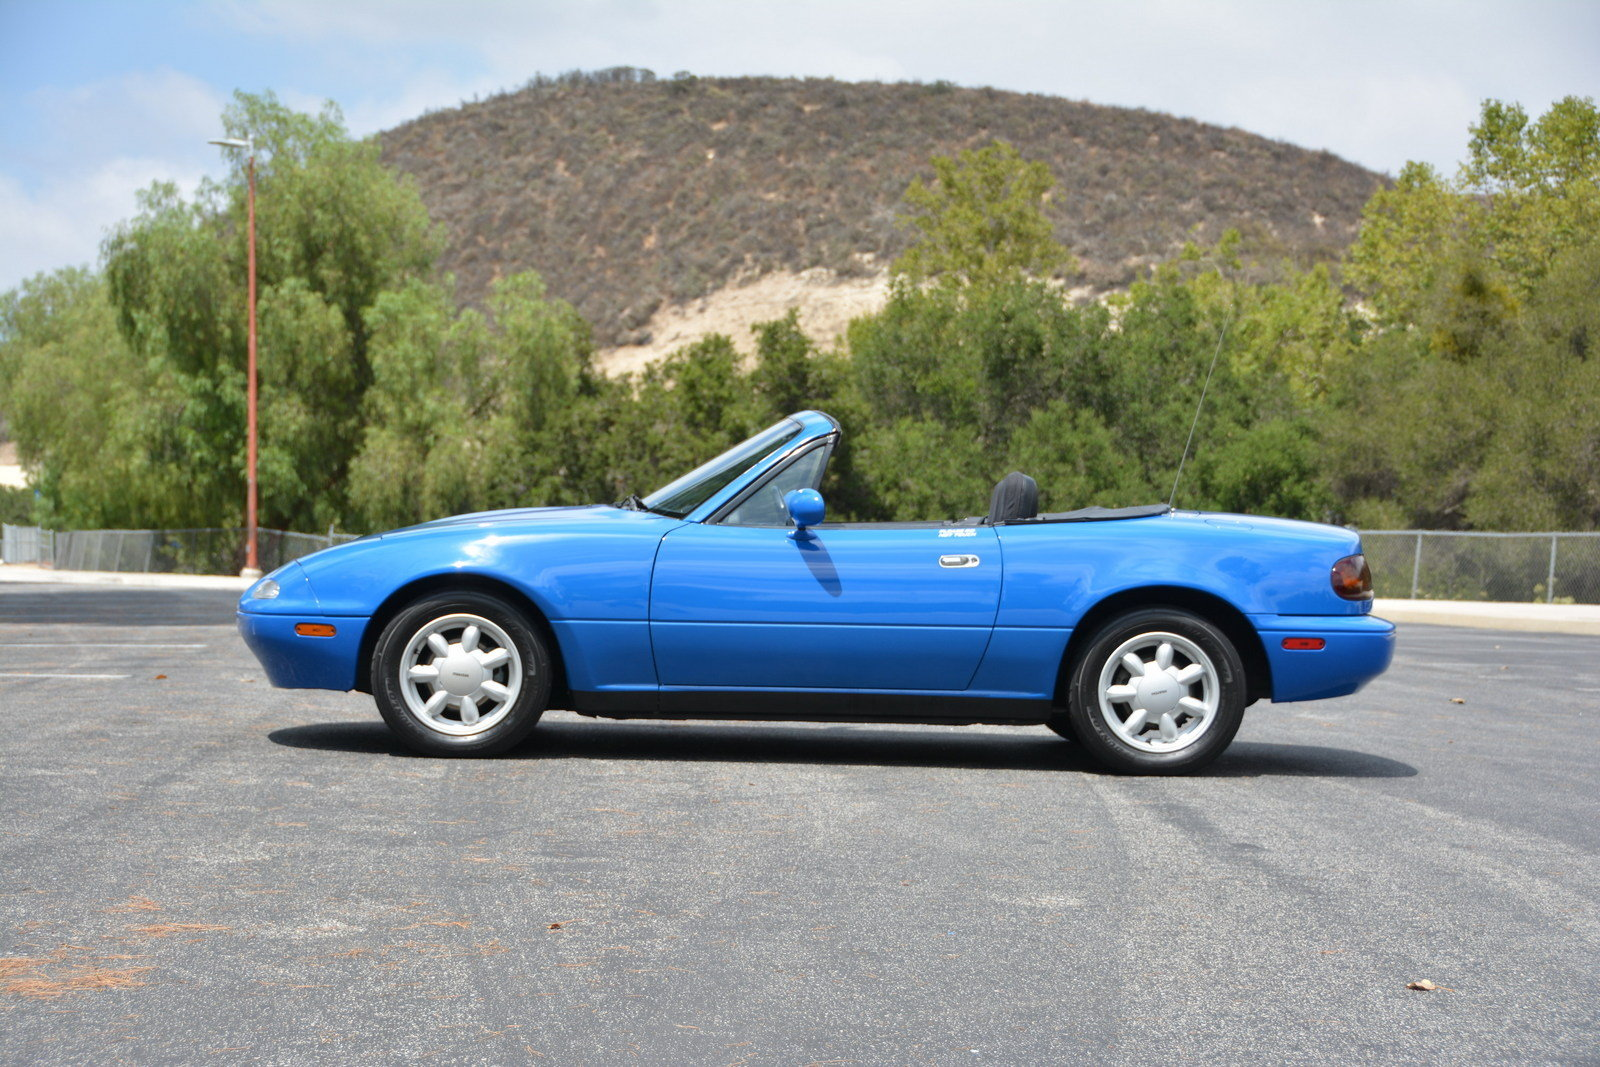 1990 mazda mx 5 miata driven picture 638412 car. Black Bedroom Furniture Sets. Home Design Ideas